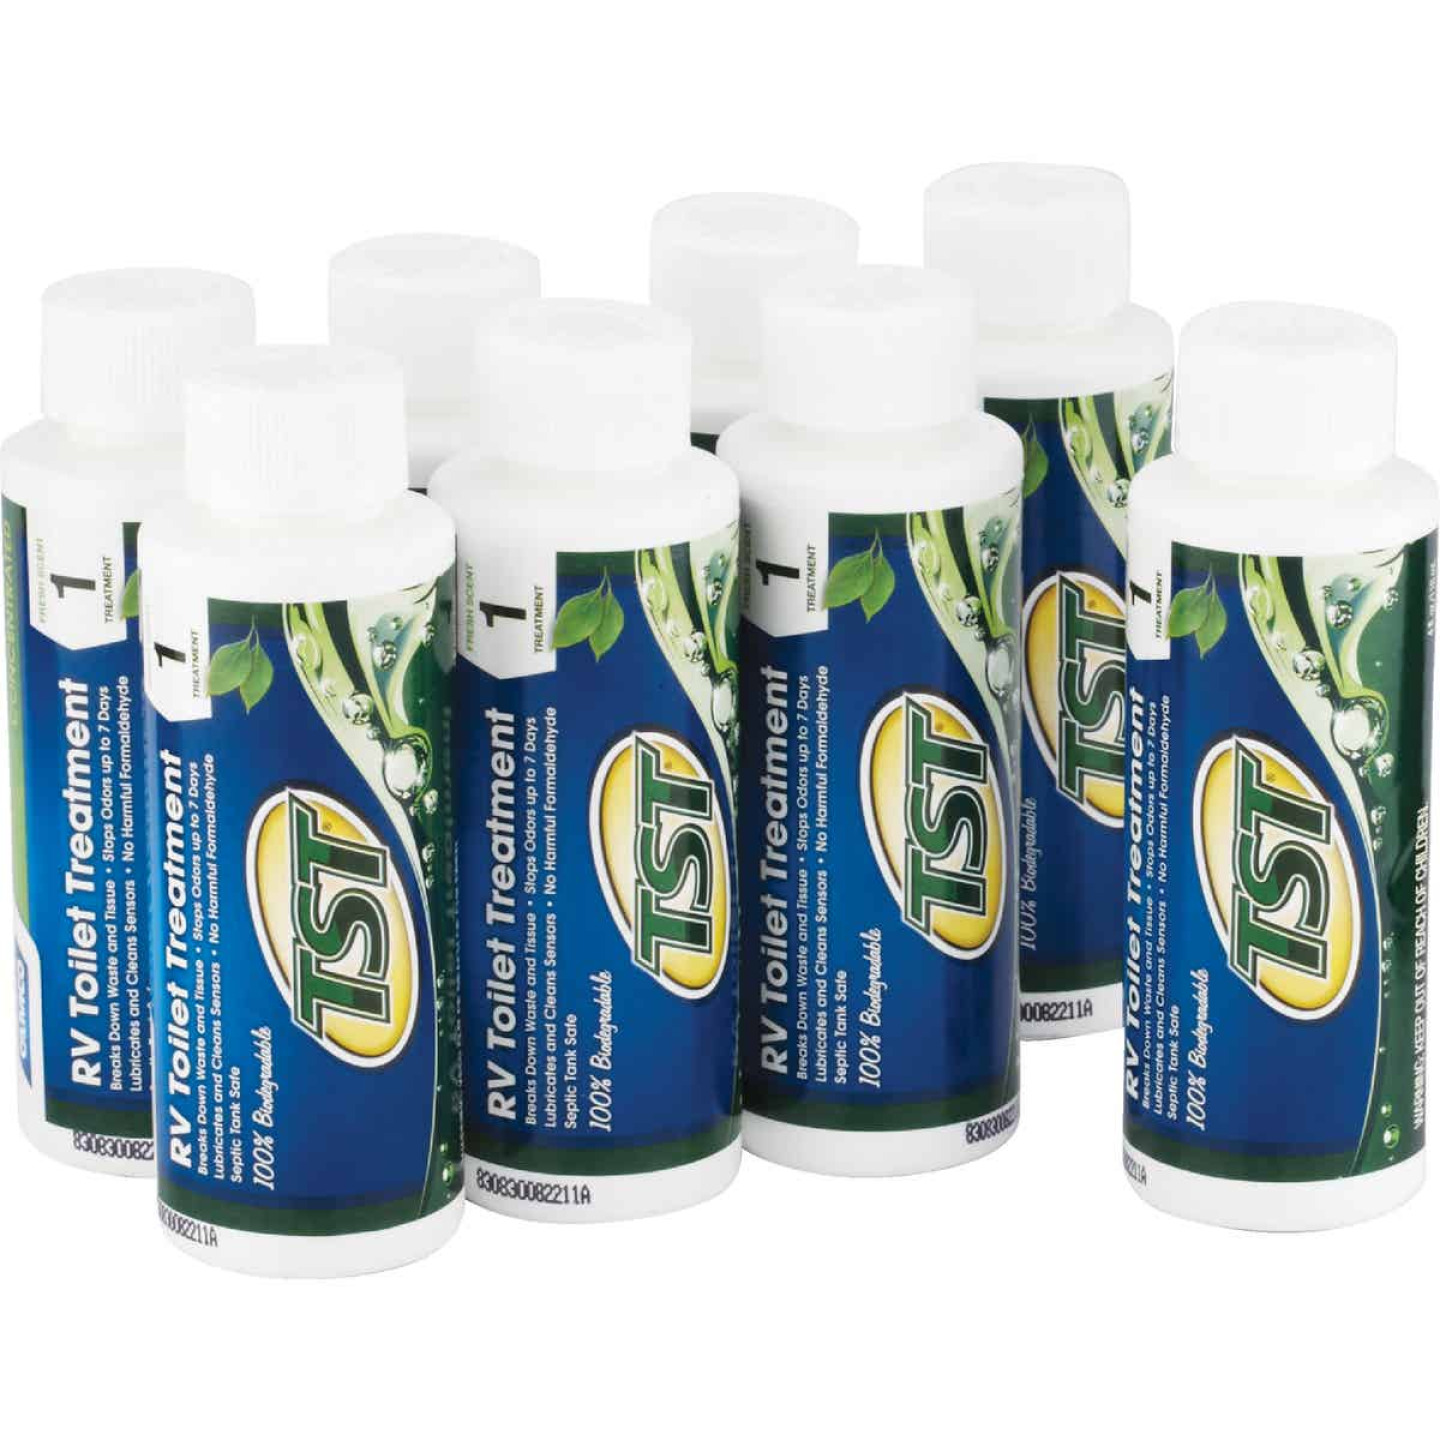 TST Singles Tank And Toilet Deodorizer, (8-Pack) Image 1